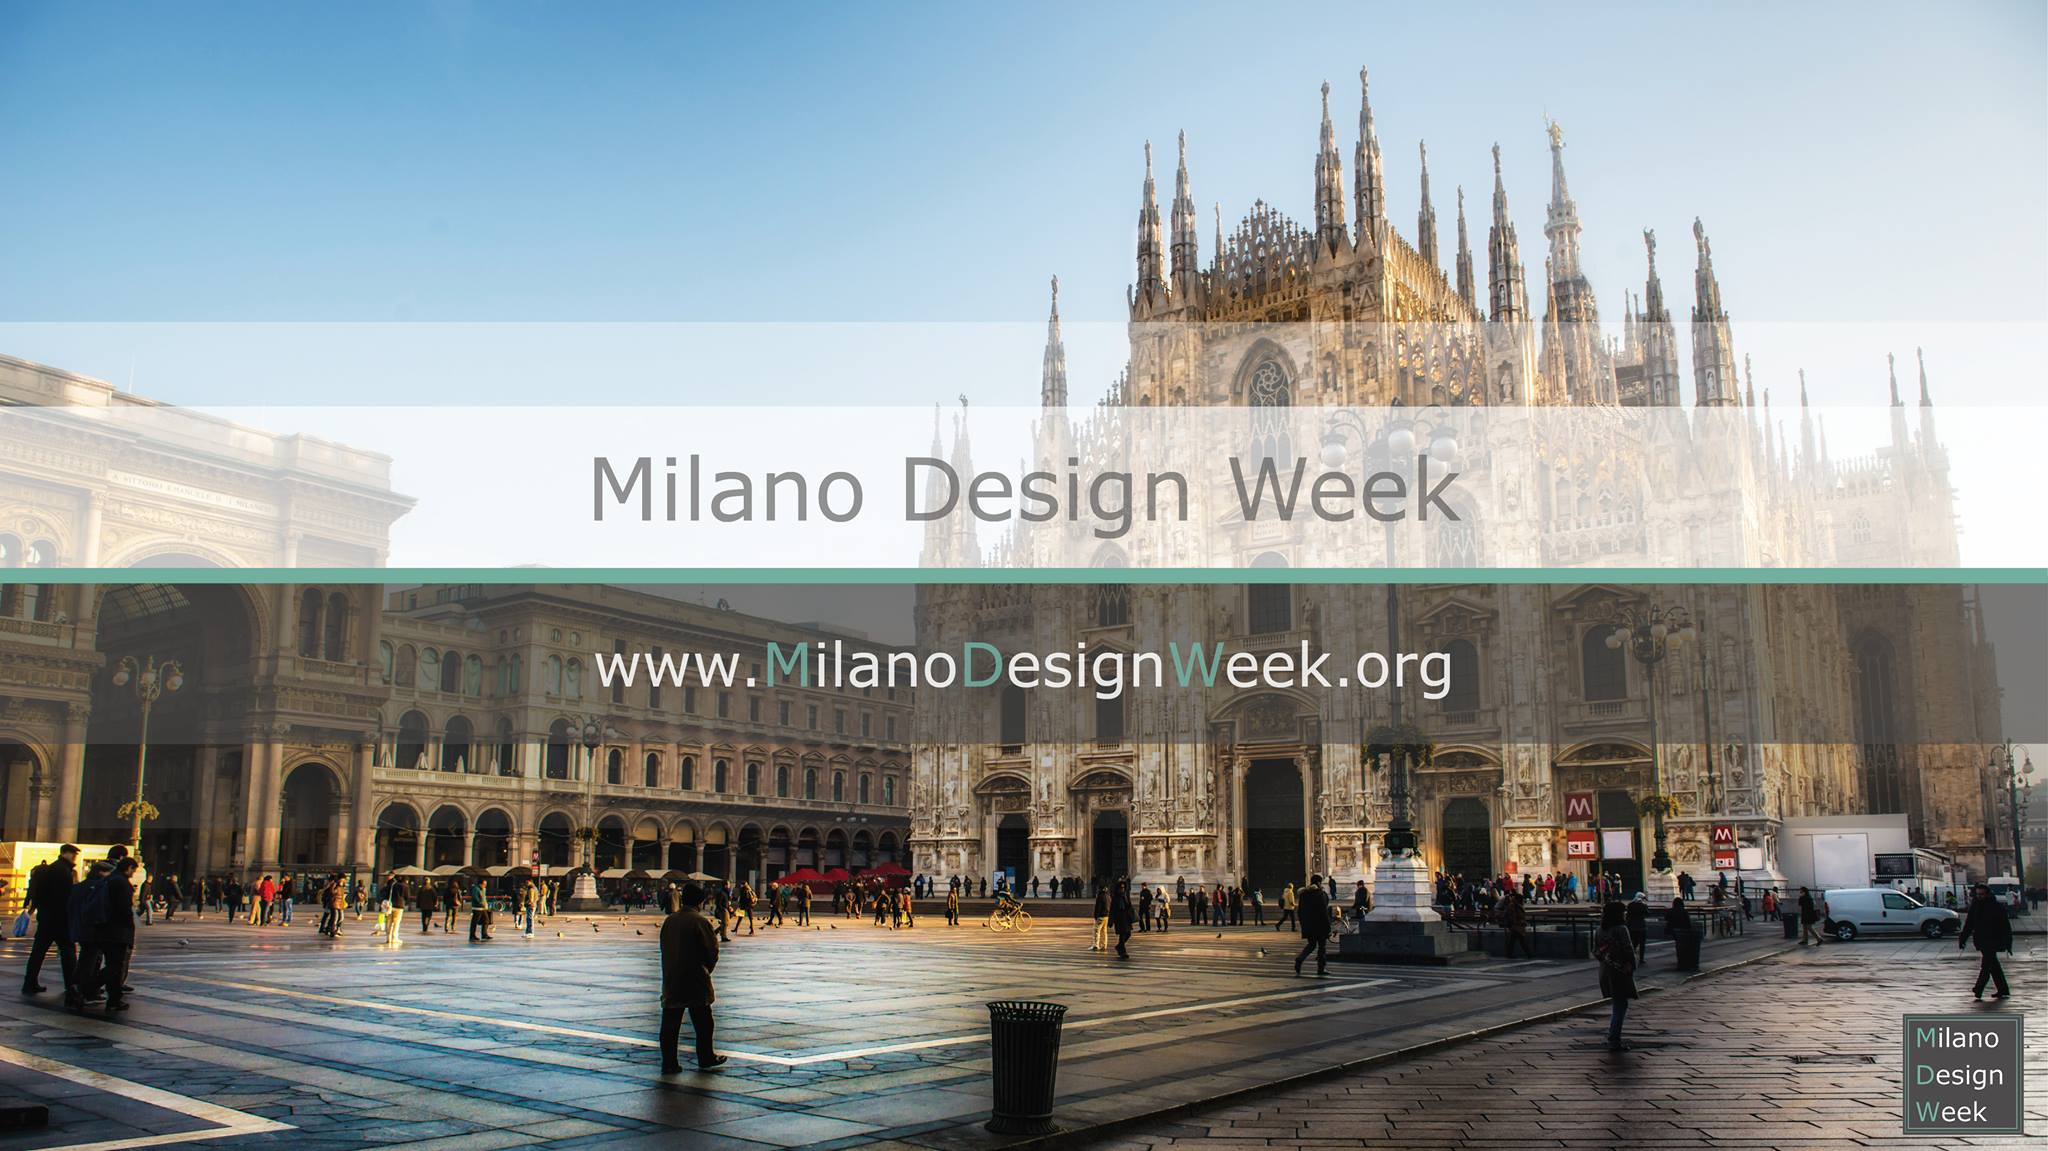 Isaloni 2016: What to see at Tortona Design Week Peter Marino Luxury interiors by Peter Marino What to see at Tortona Design Week Peter Marino Luxury interiors by Peter Marino What to see at Tortona Design Week